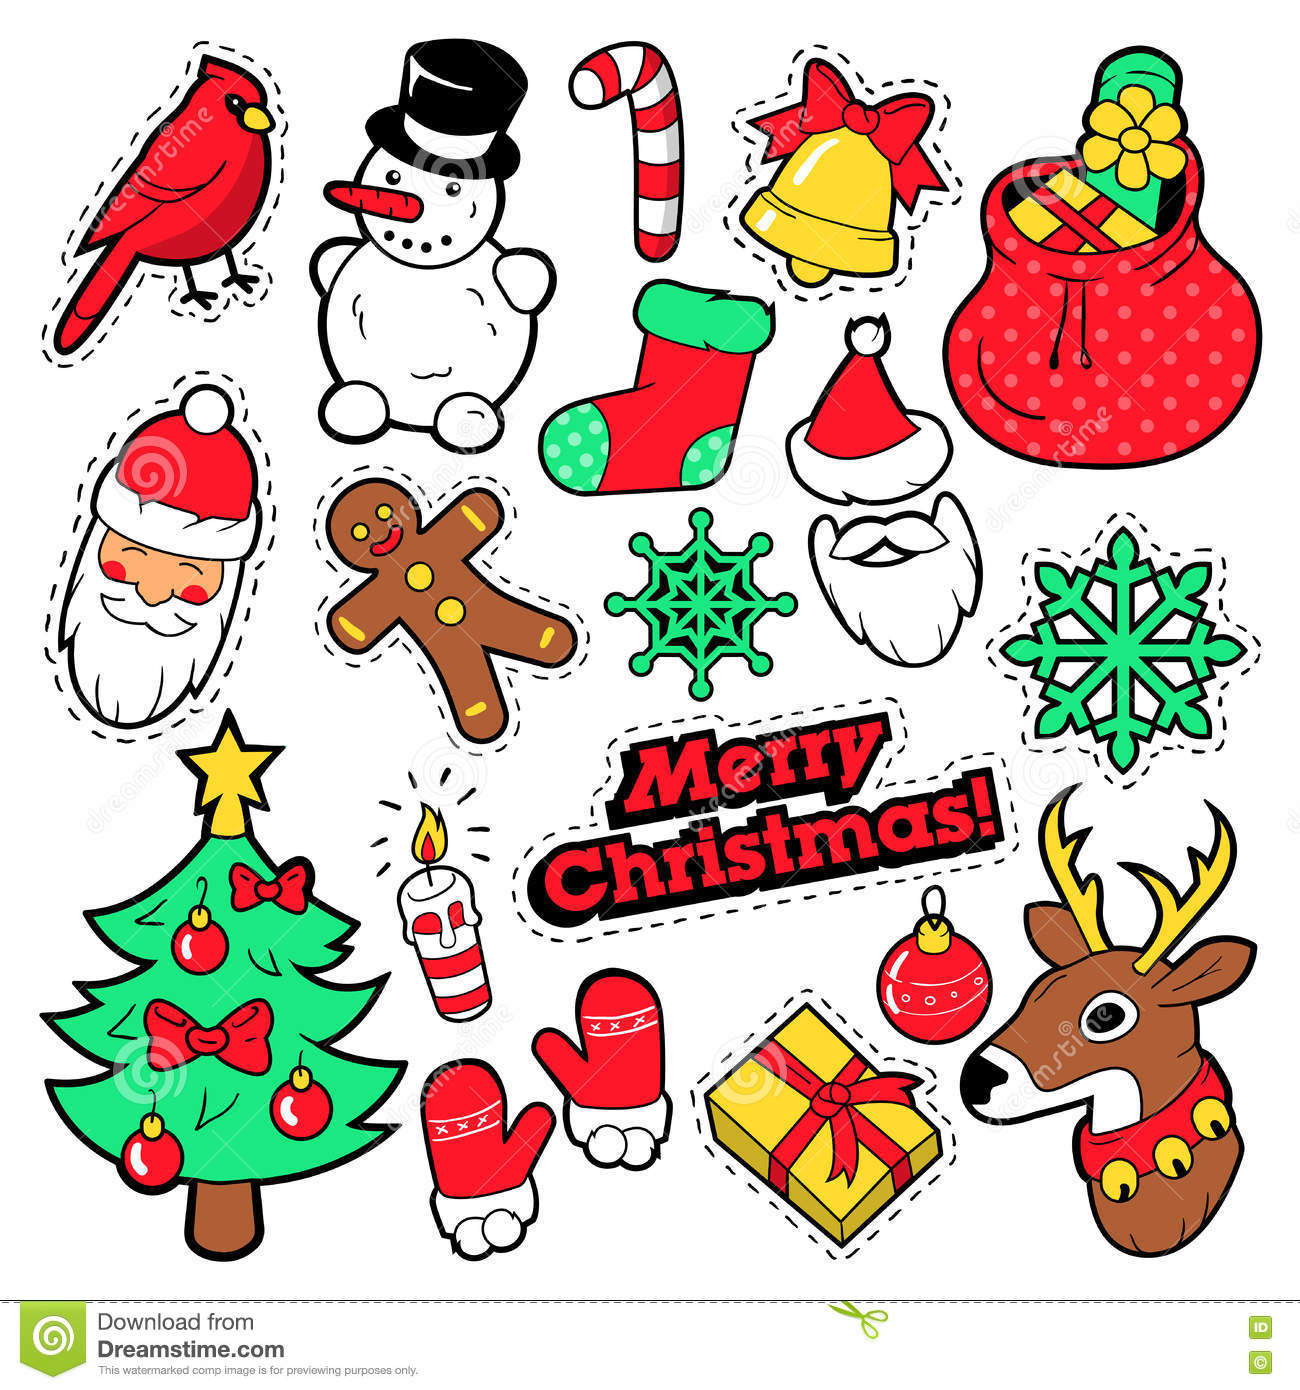 merry christmas badges patches stickers santa claus snowman snowflake christmas tree in